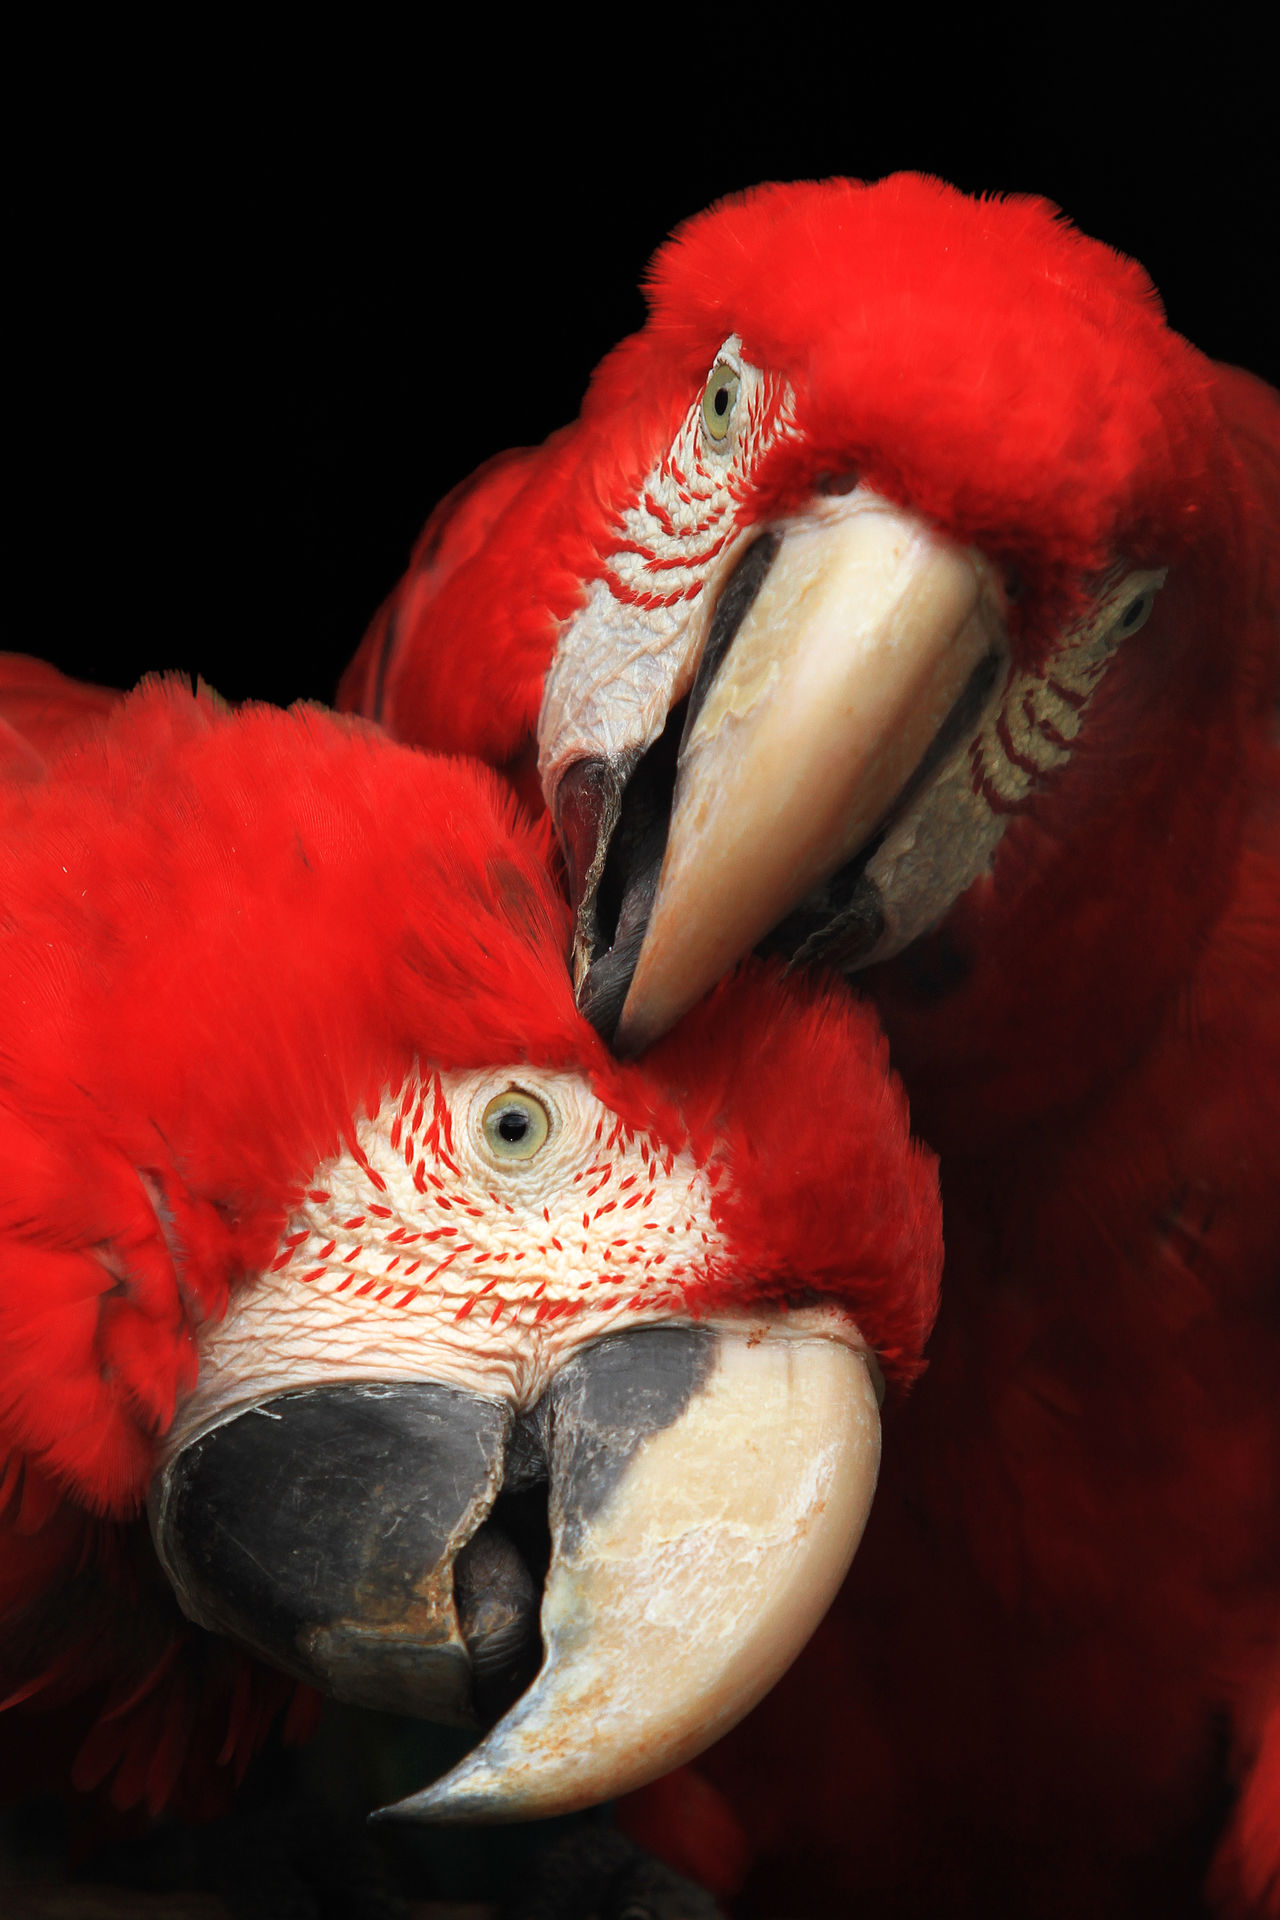 Macaw Animal Themes Animals In The Wild Aves Aves 🐥🐤🐥 Beauty Bird Birds_collection Black Background Close-up Colour Looking At Camera Love Macaque Macaw Nature No People Outdoors Parrot Pretty Red Scarlet Macaw Songbird  Togetherness